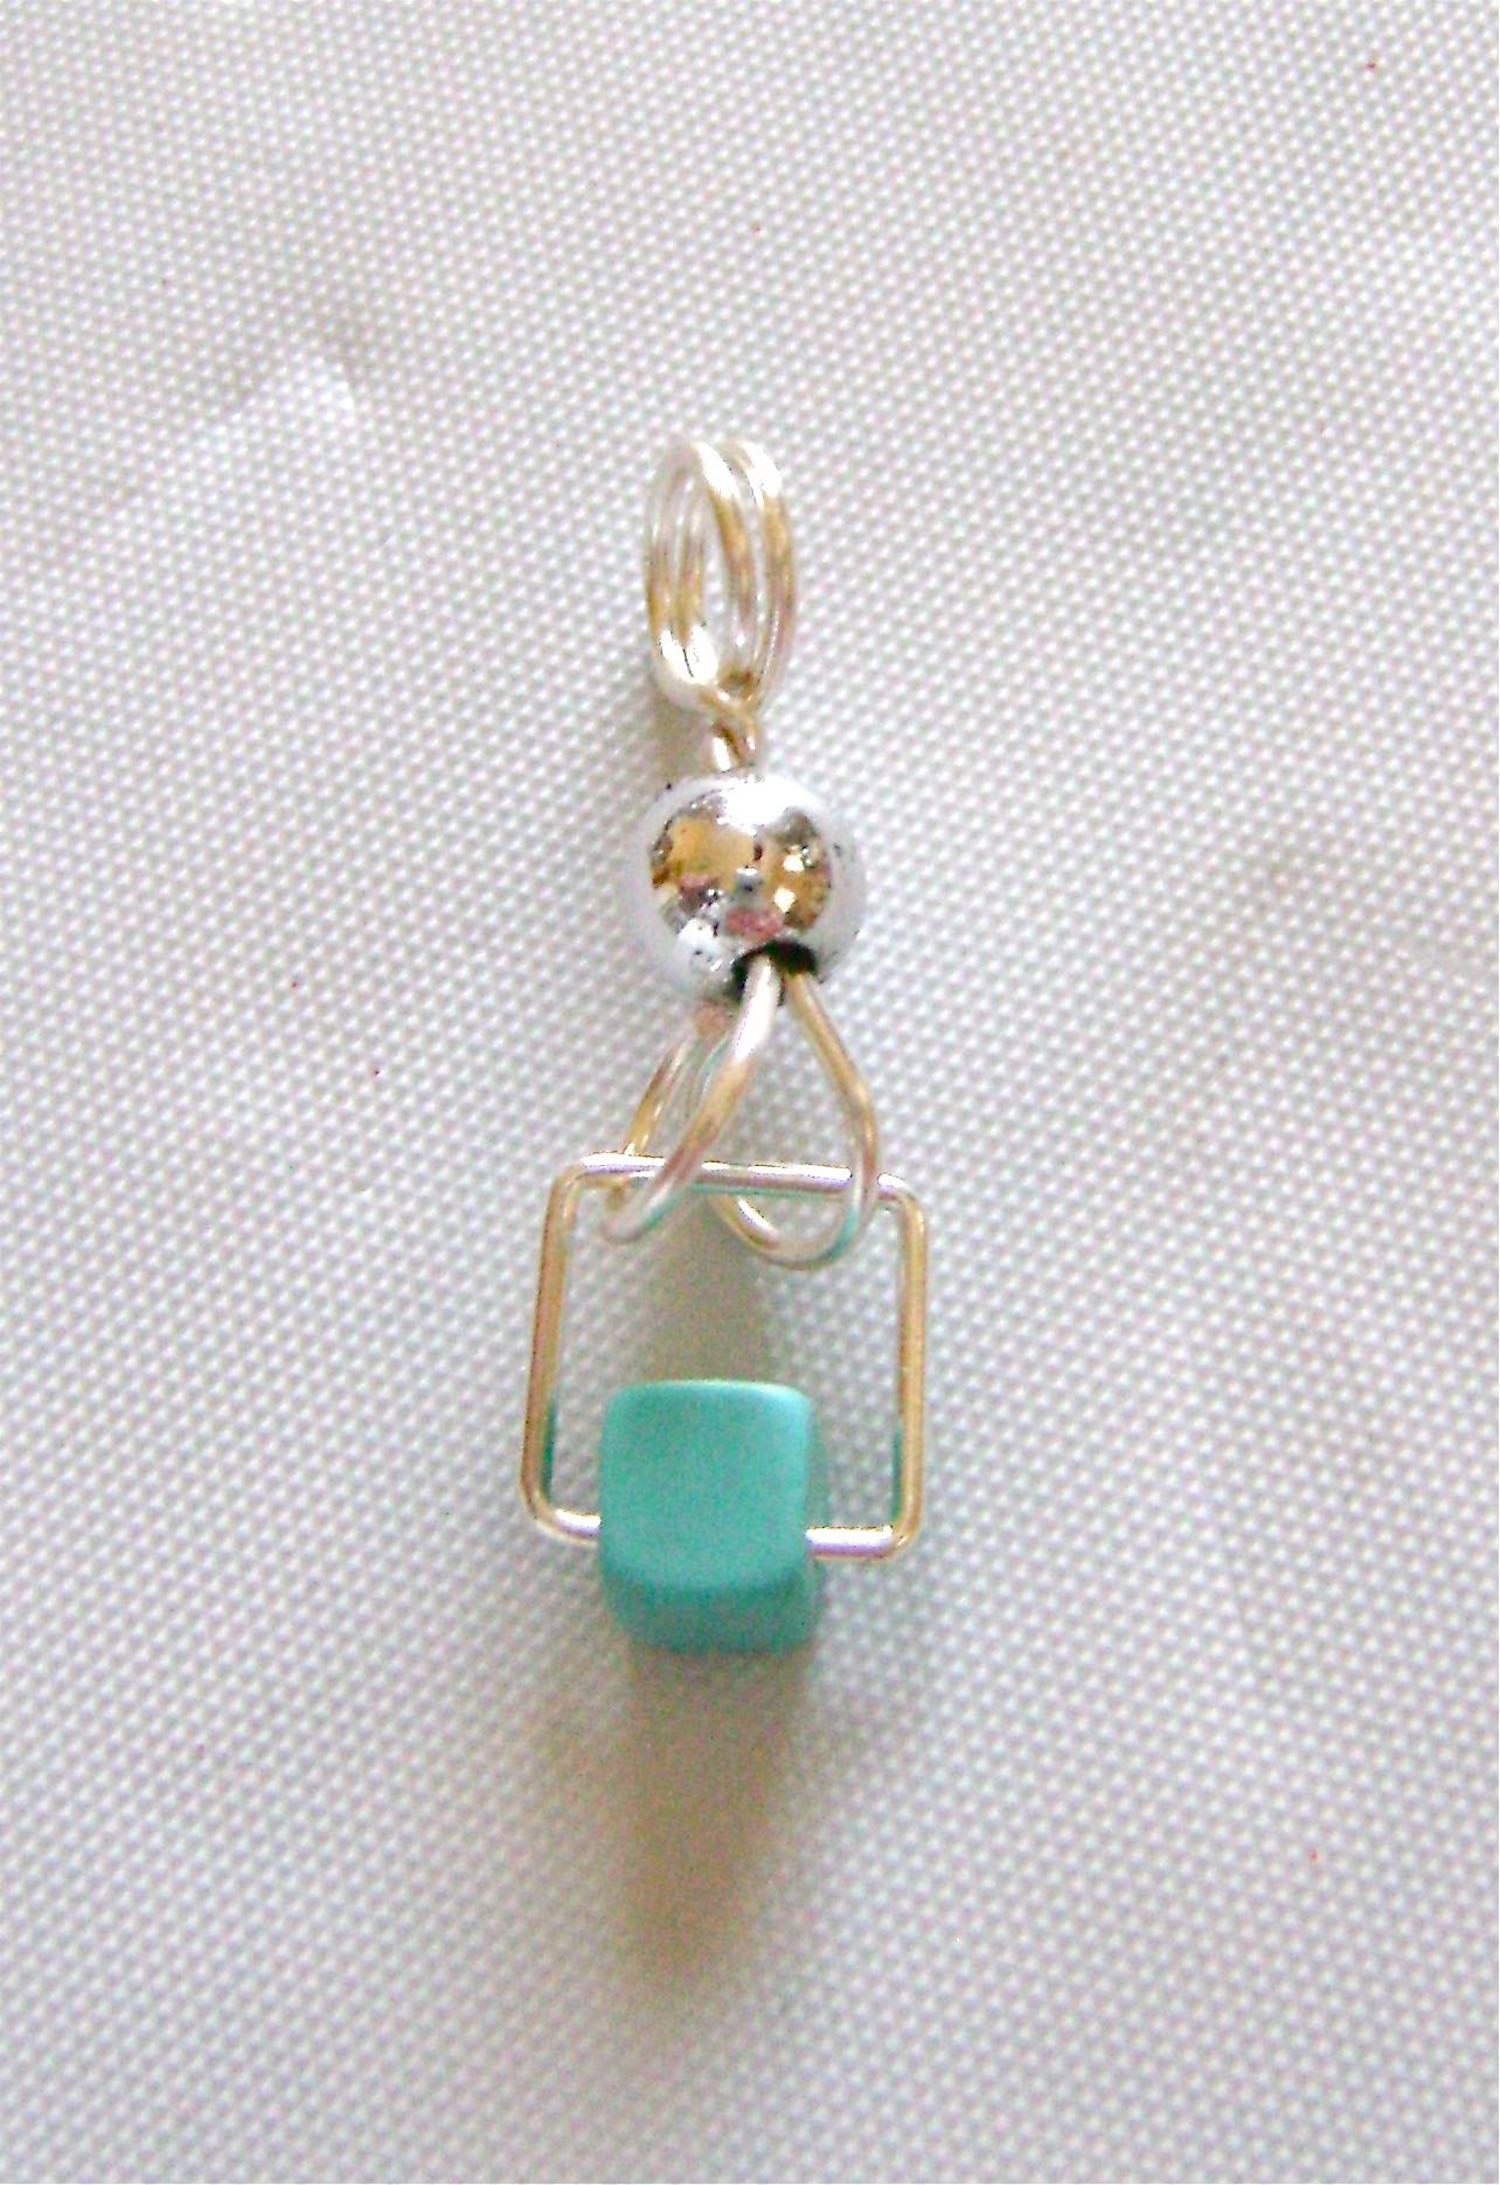 step 8 - Arranging the loops so that each one is slanted outward to the corners of the square will keep the square level and prevent it from rotating as you wear them. Attach an earring wire.